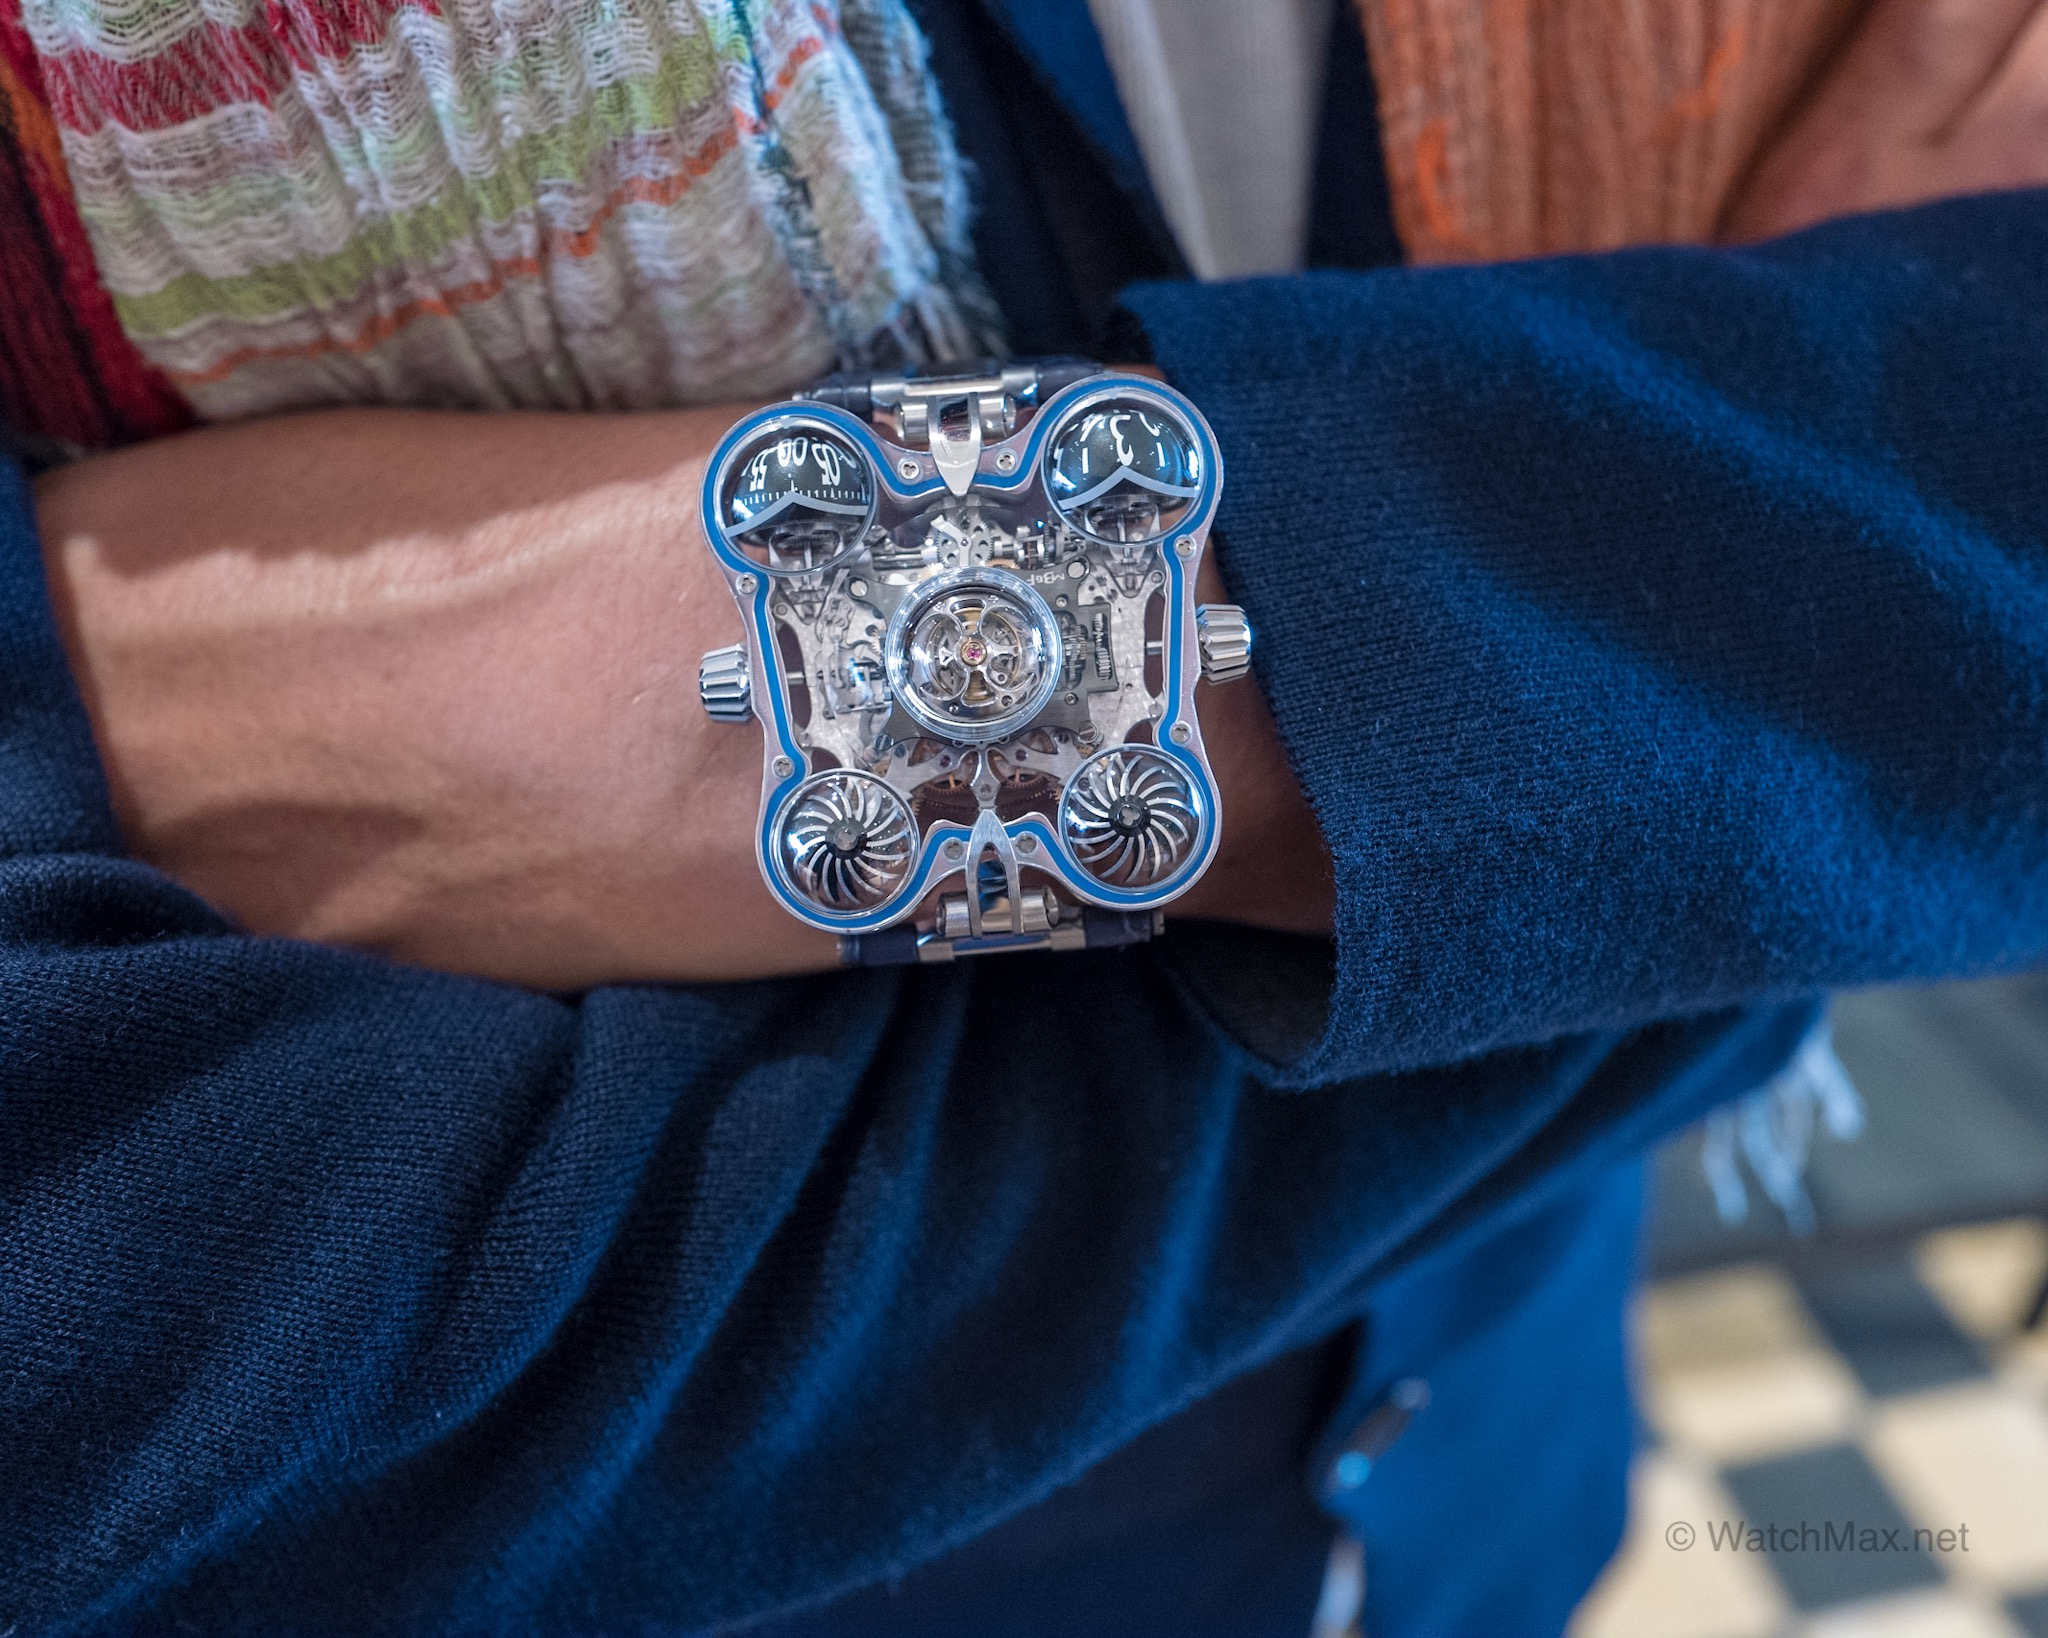 HM6 Sapphire on the wrist of a patron at Stephen Silver Fine Jewelry